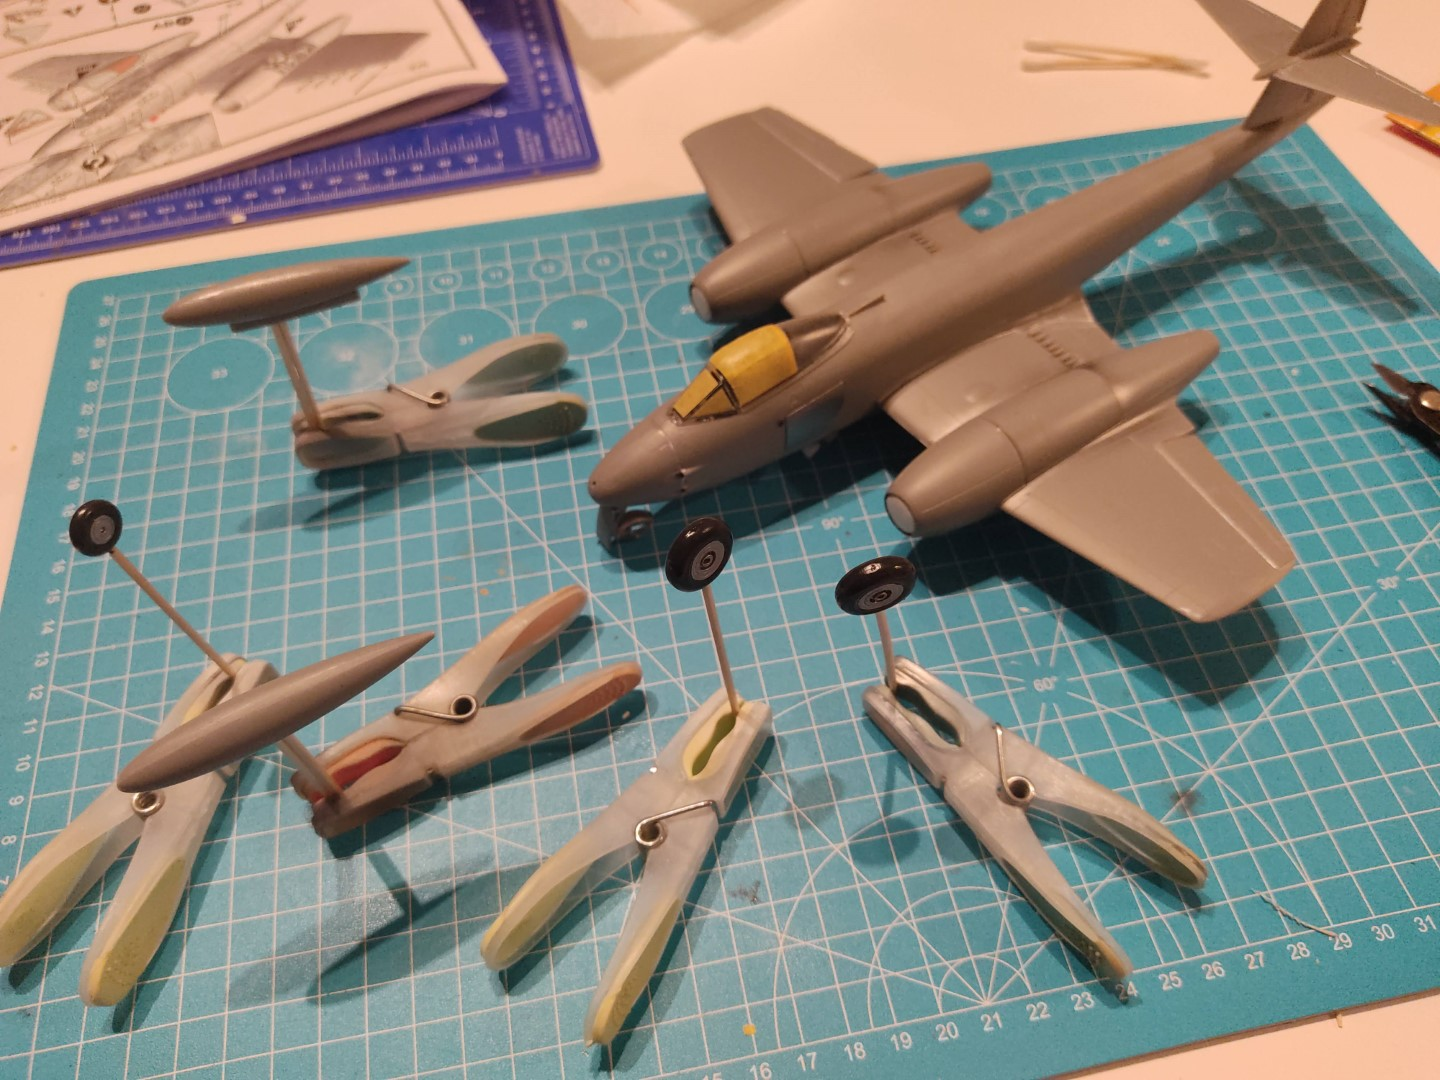 [Work-in-Progress] Airfix Gloster Meteor F.8 - The wheels are ready and the canopy is masked.